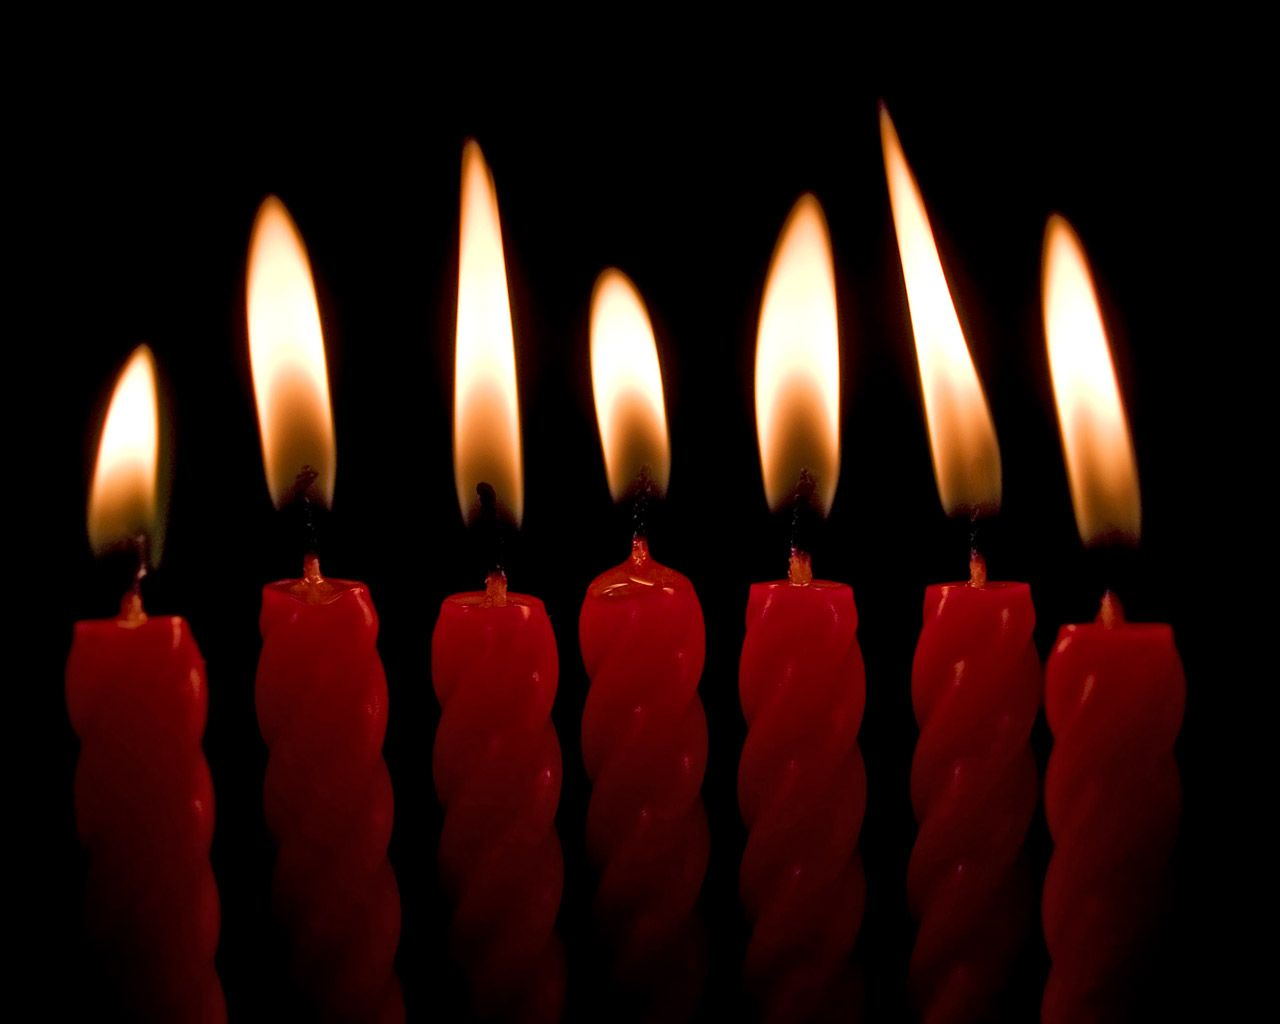 1280x1024 Aligned candles desktop wallpapers and stock photos